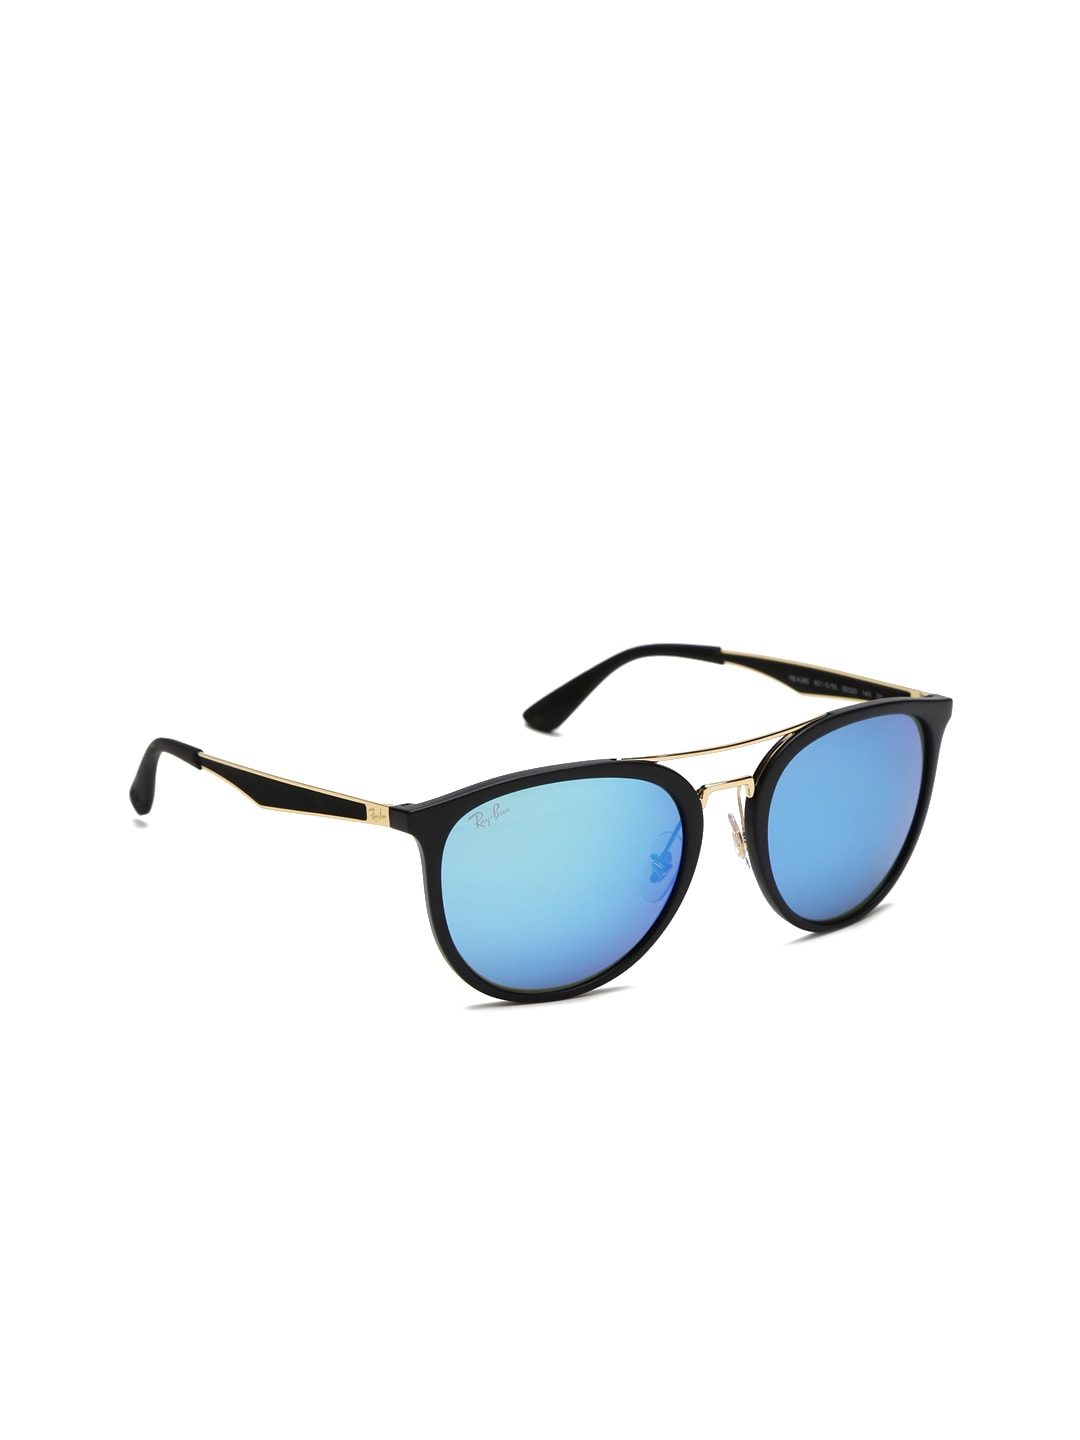 124a508b56 Ray Ban - Buy Ray Ban Sunglasses   Frames Online In India